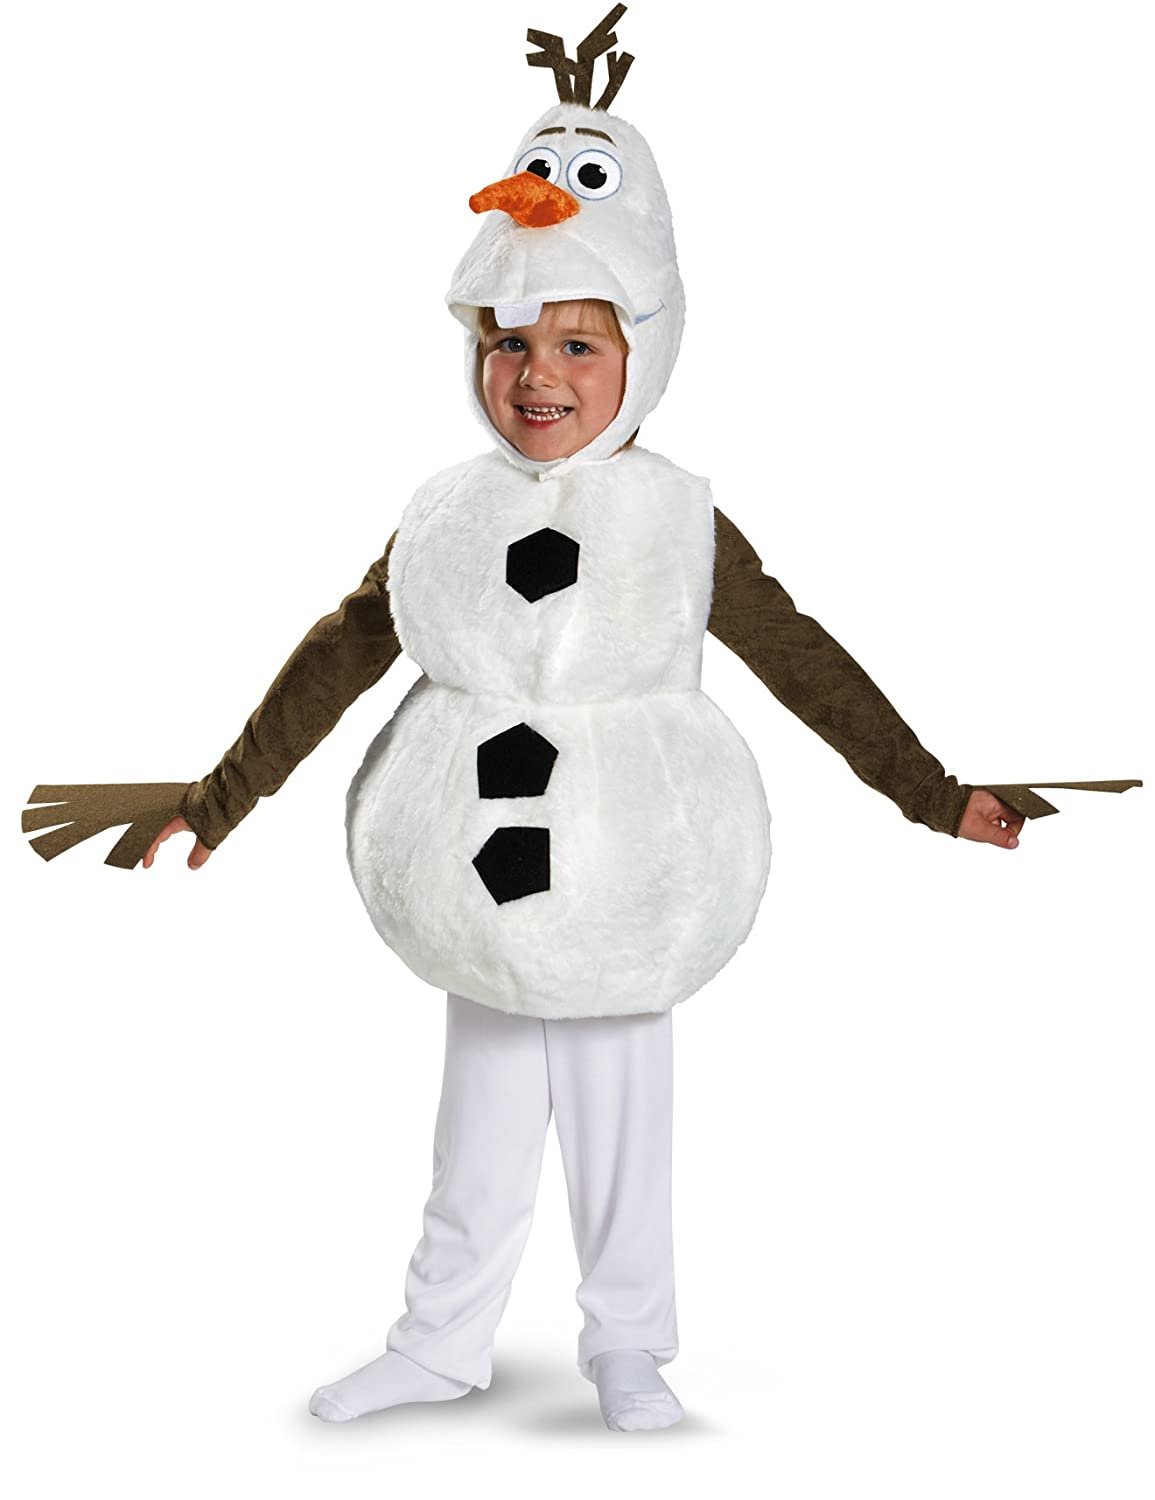 Disney Frozen Baby Olaf Costum...